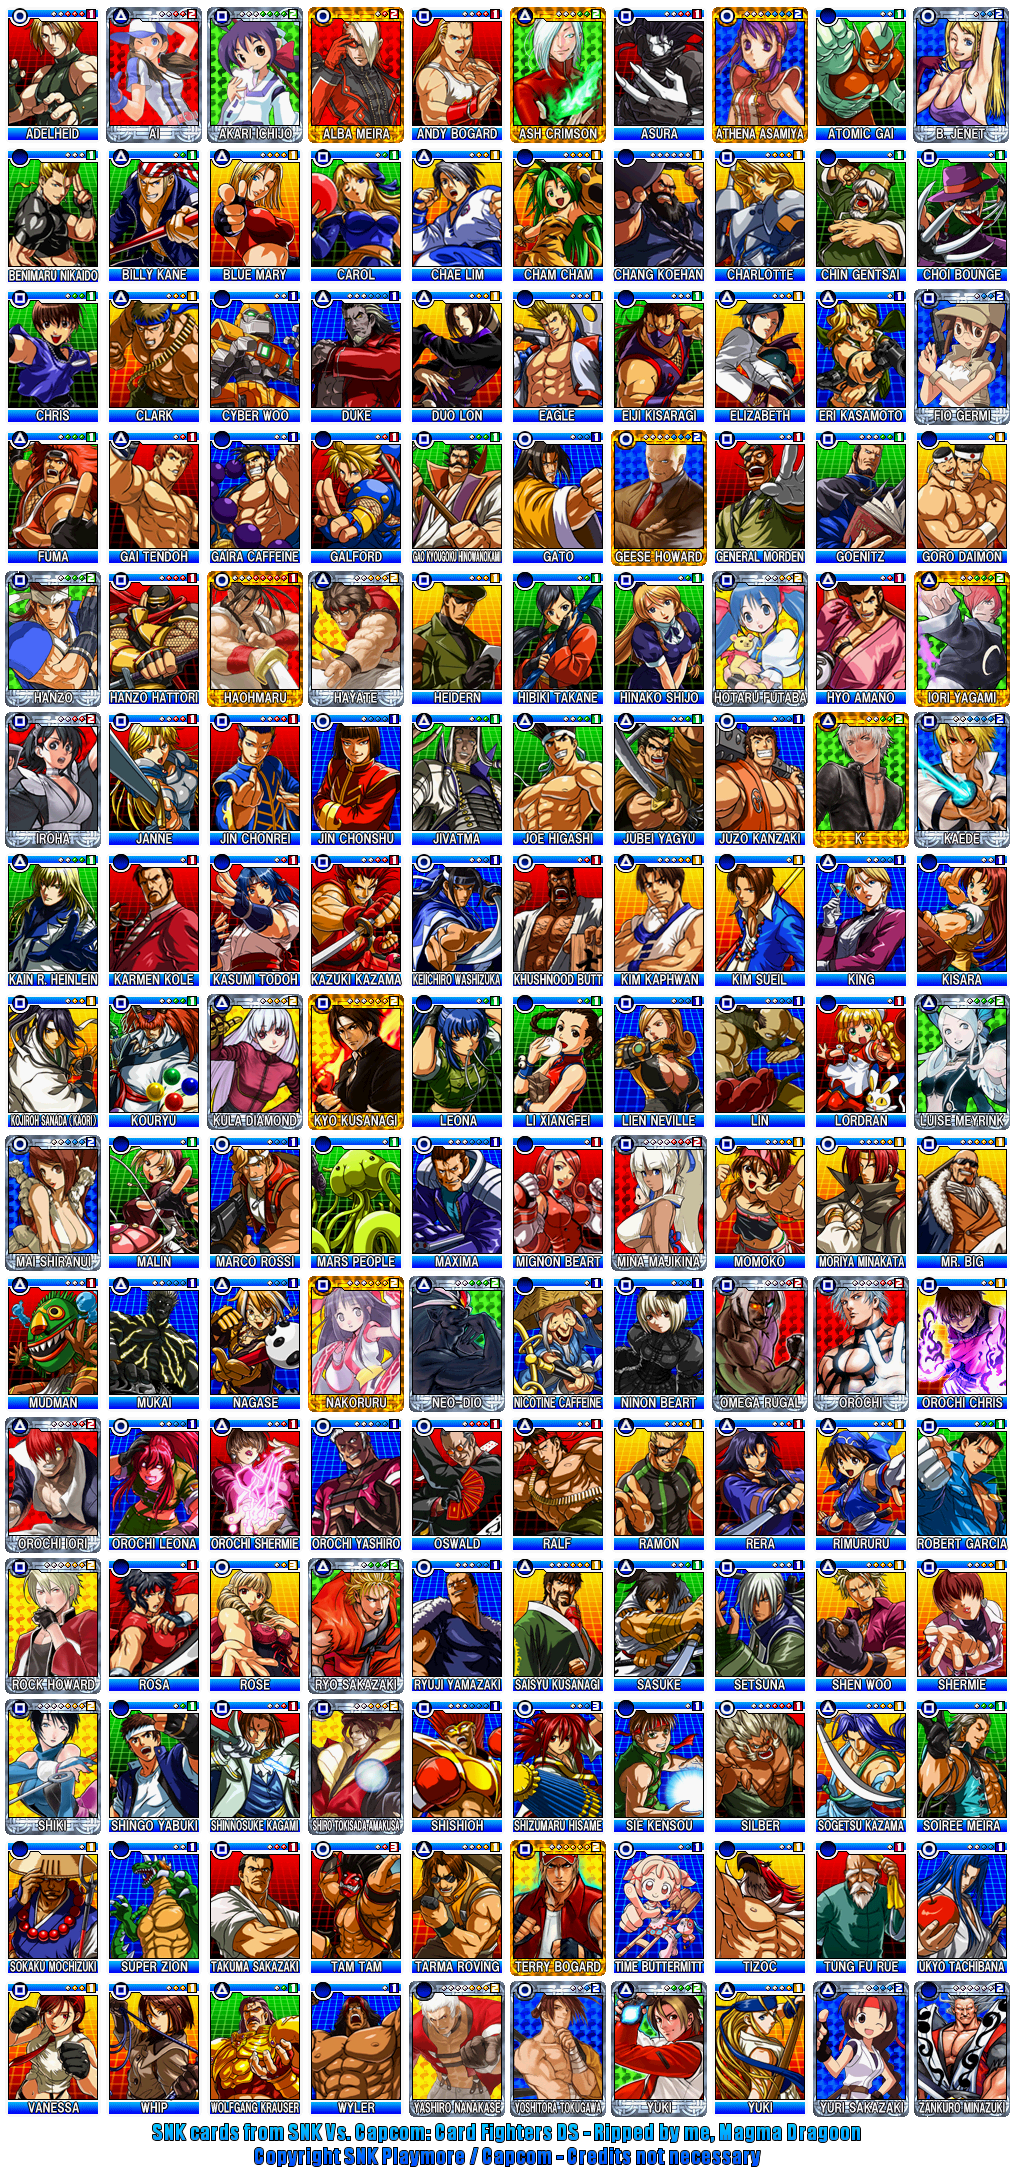 SNK Cards